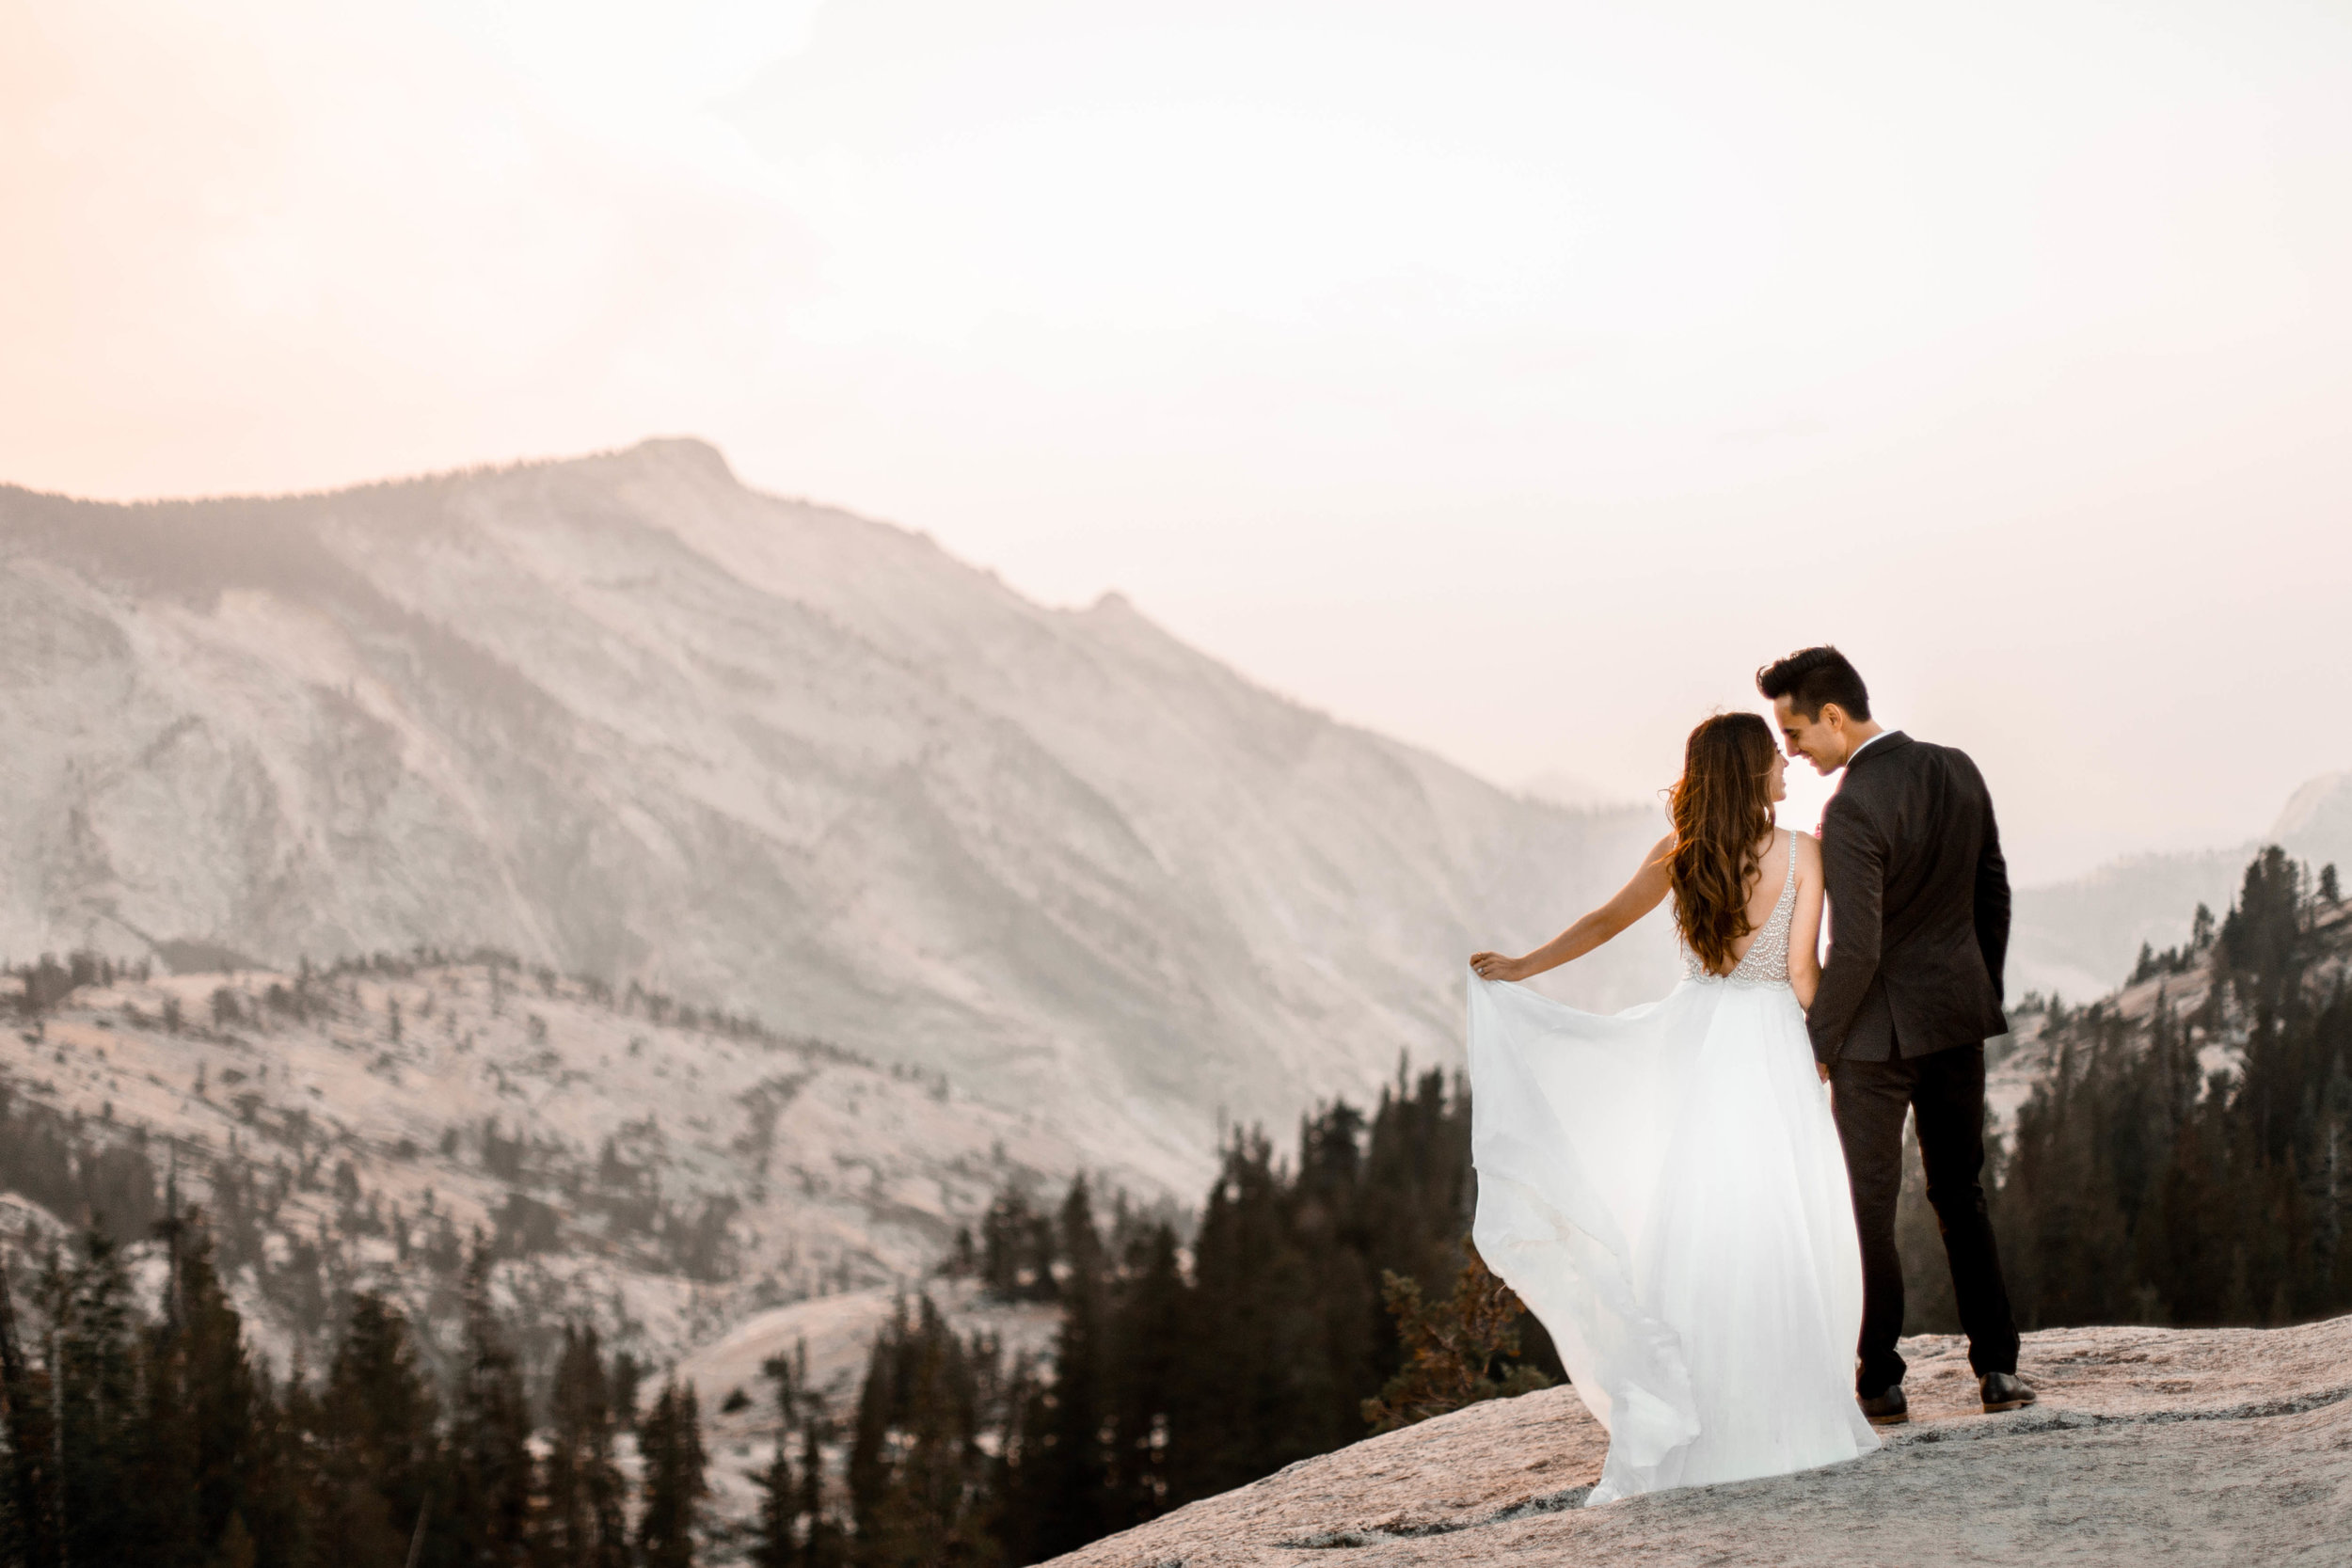 nicole-daacke-photography-yosemite-national-park-wedding-sunset-elopement-olmstead-point-yosemite-adventure-wedding-photographer-adventurous-elopement-destination-wedding-national-park-wedding-photography-2004.jpg